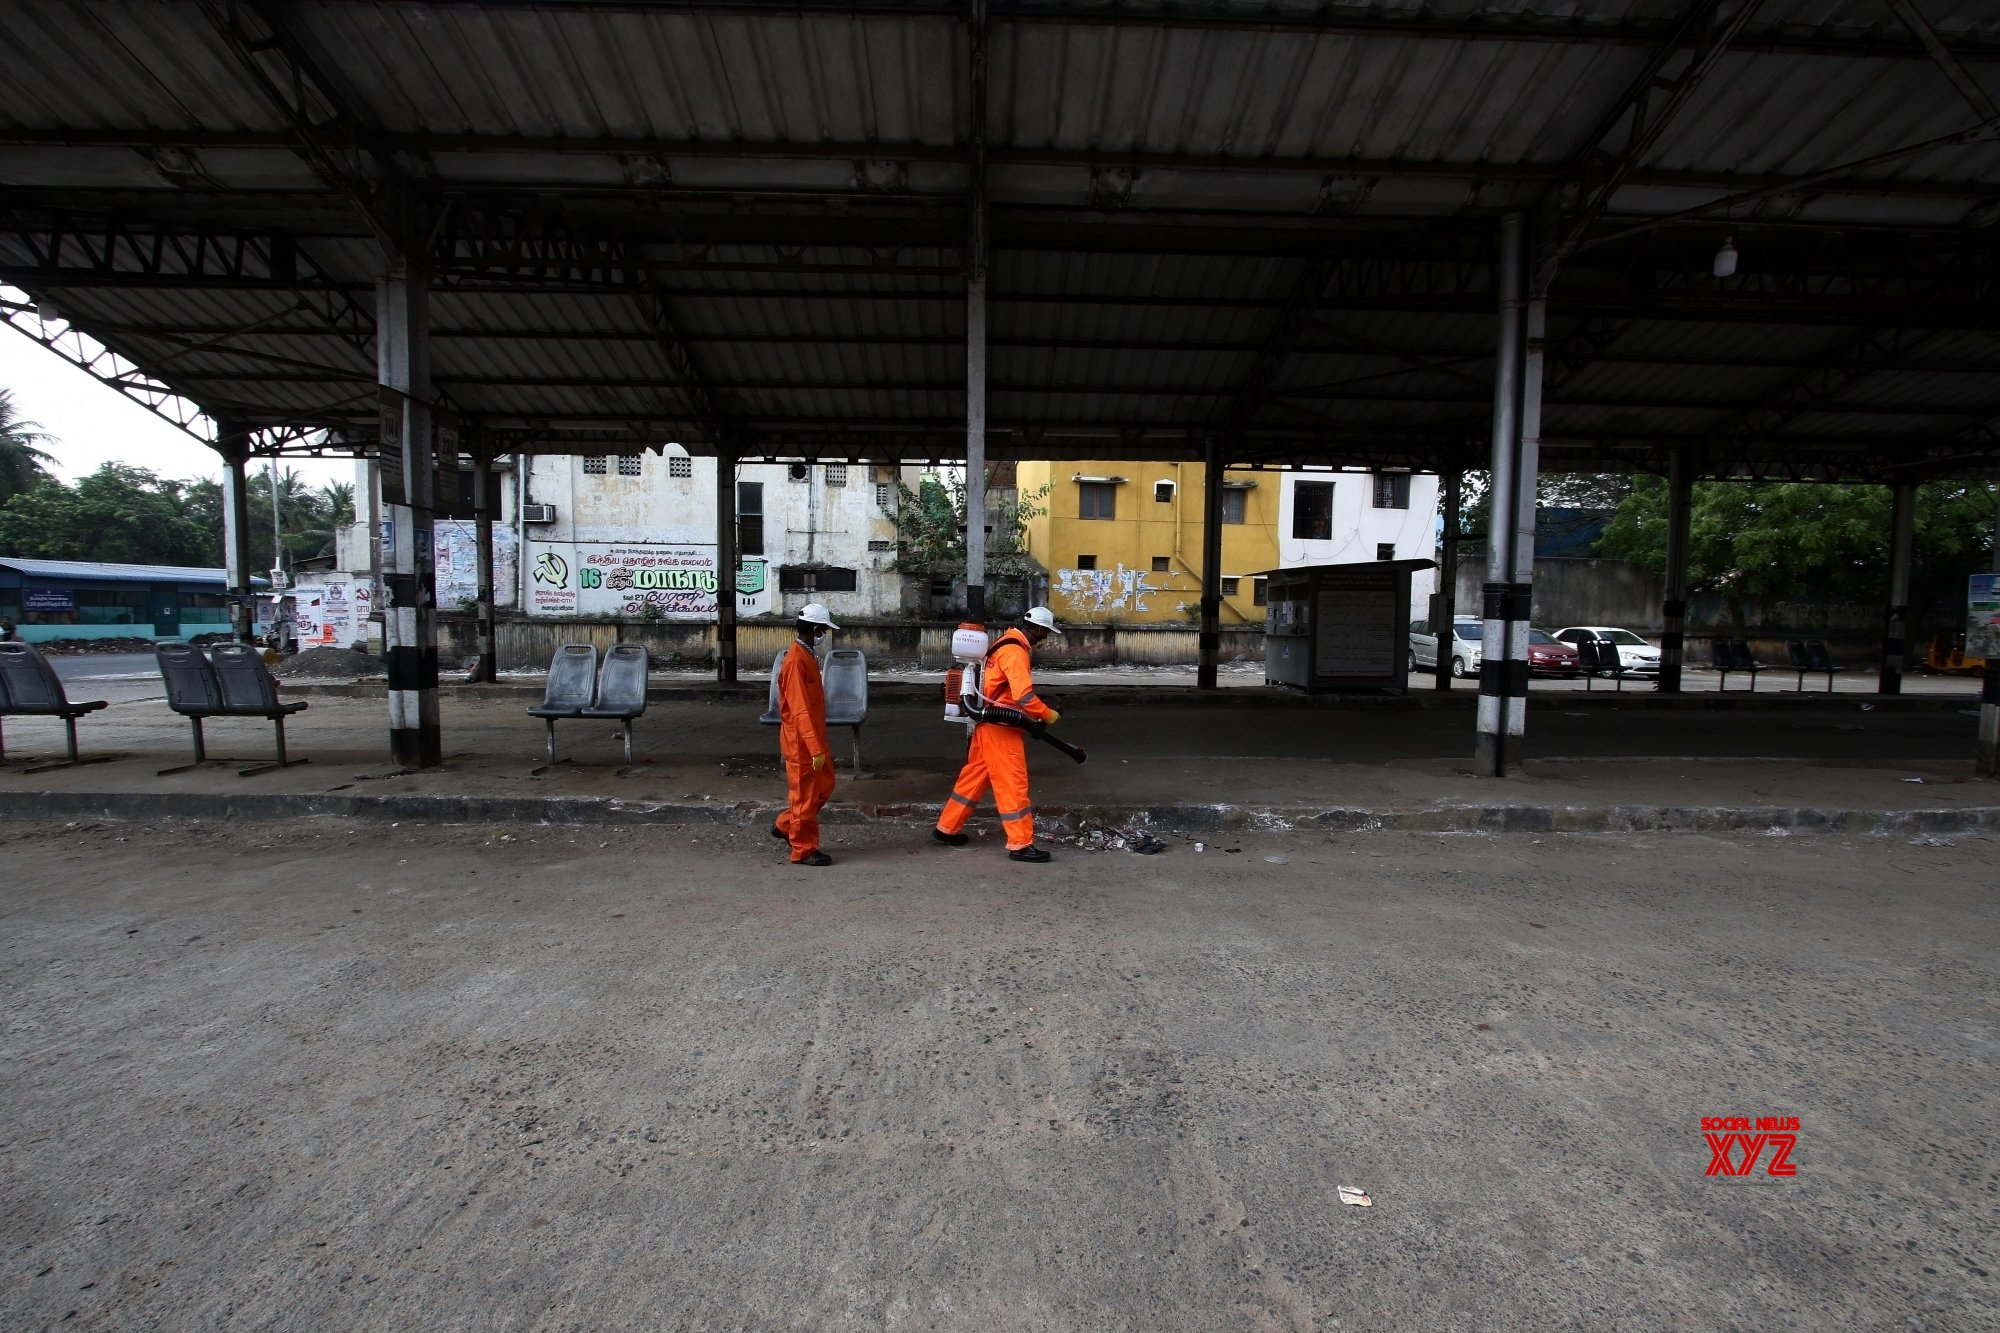 Chennai: City being disinfected on Day 2 of 21 - day nationwide lockdown amid COVID - 19 pandemic #Gallery